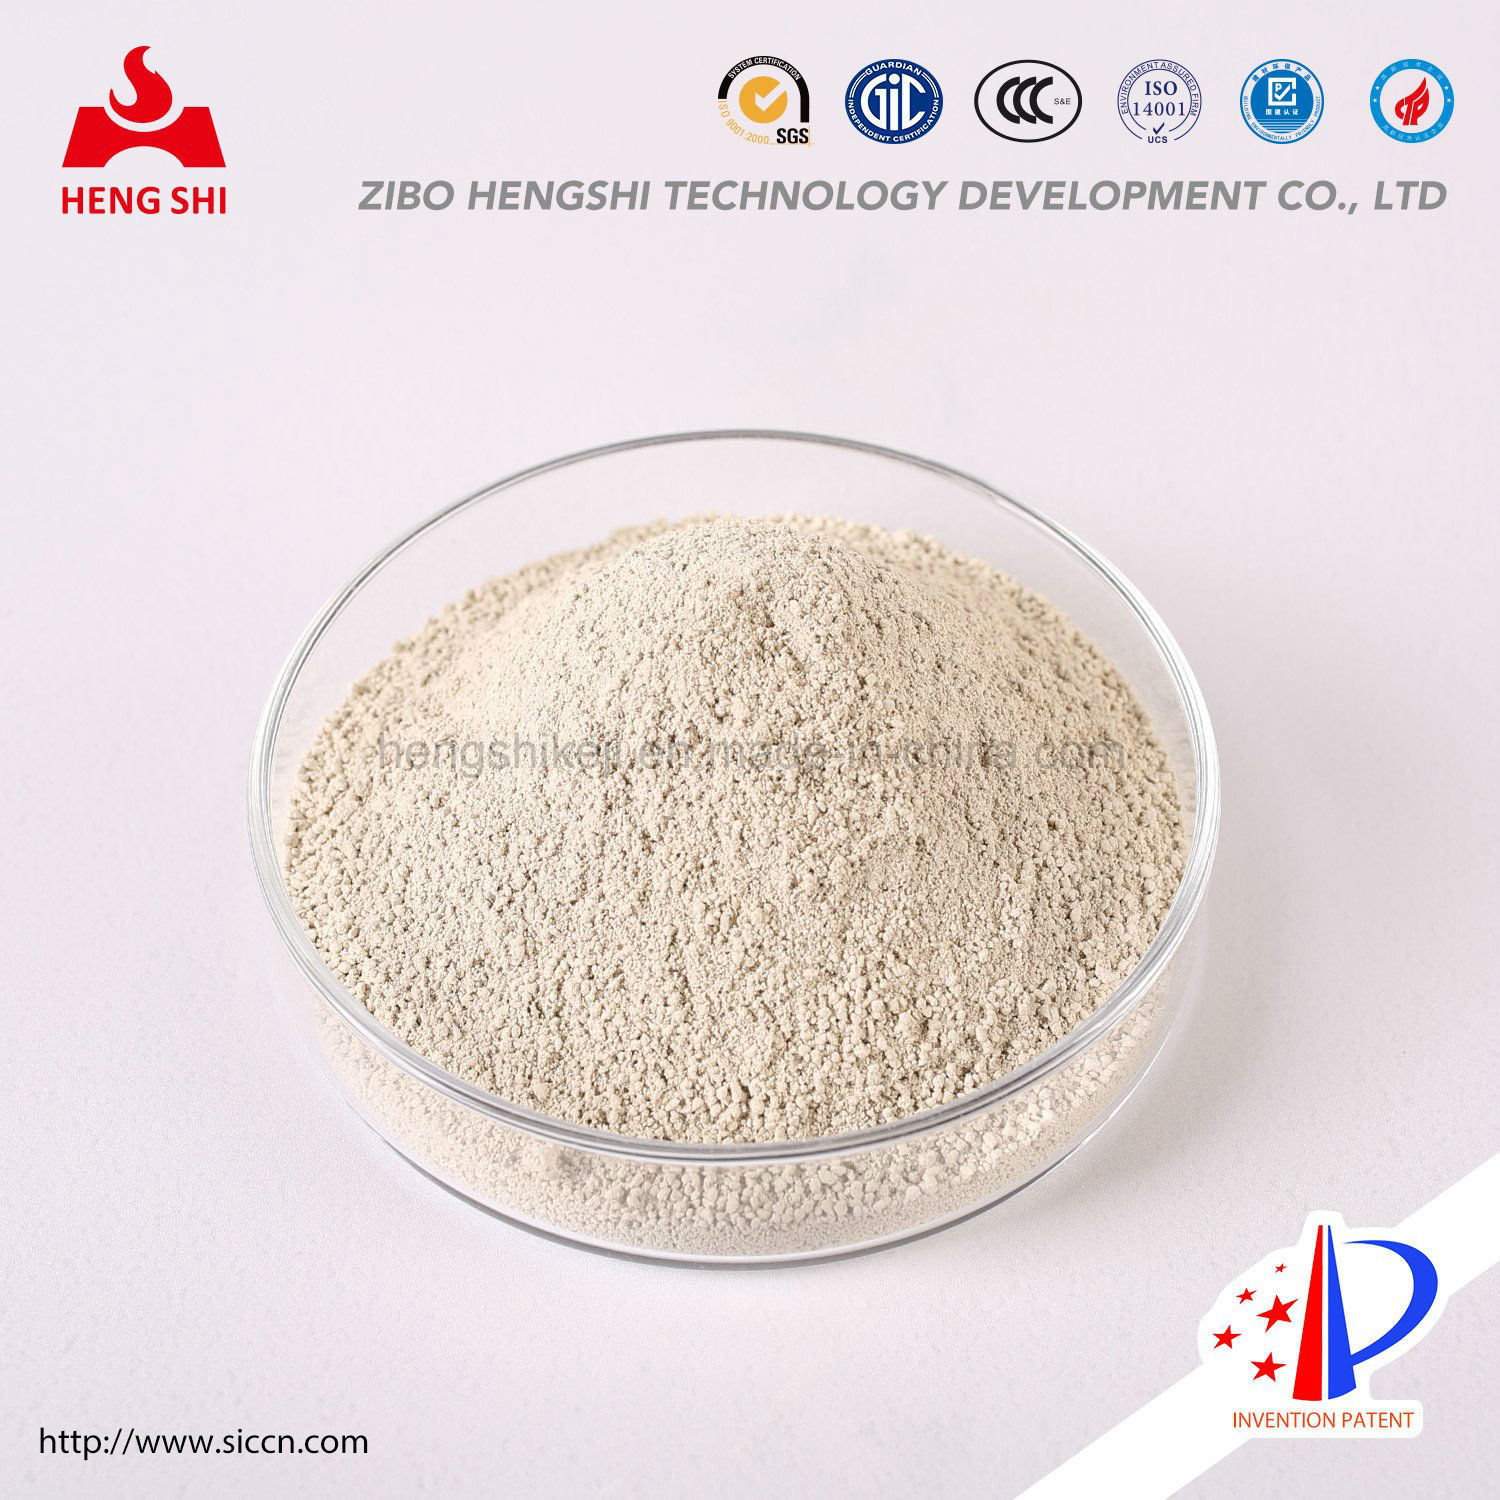 New-Type Chemical Material Silicon Nitride Powder for Refractory